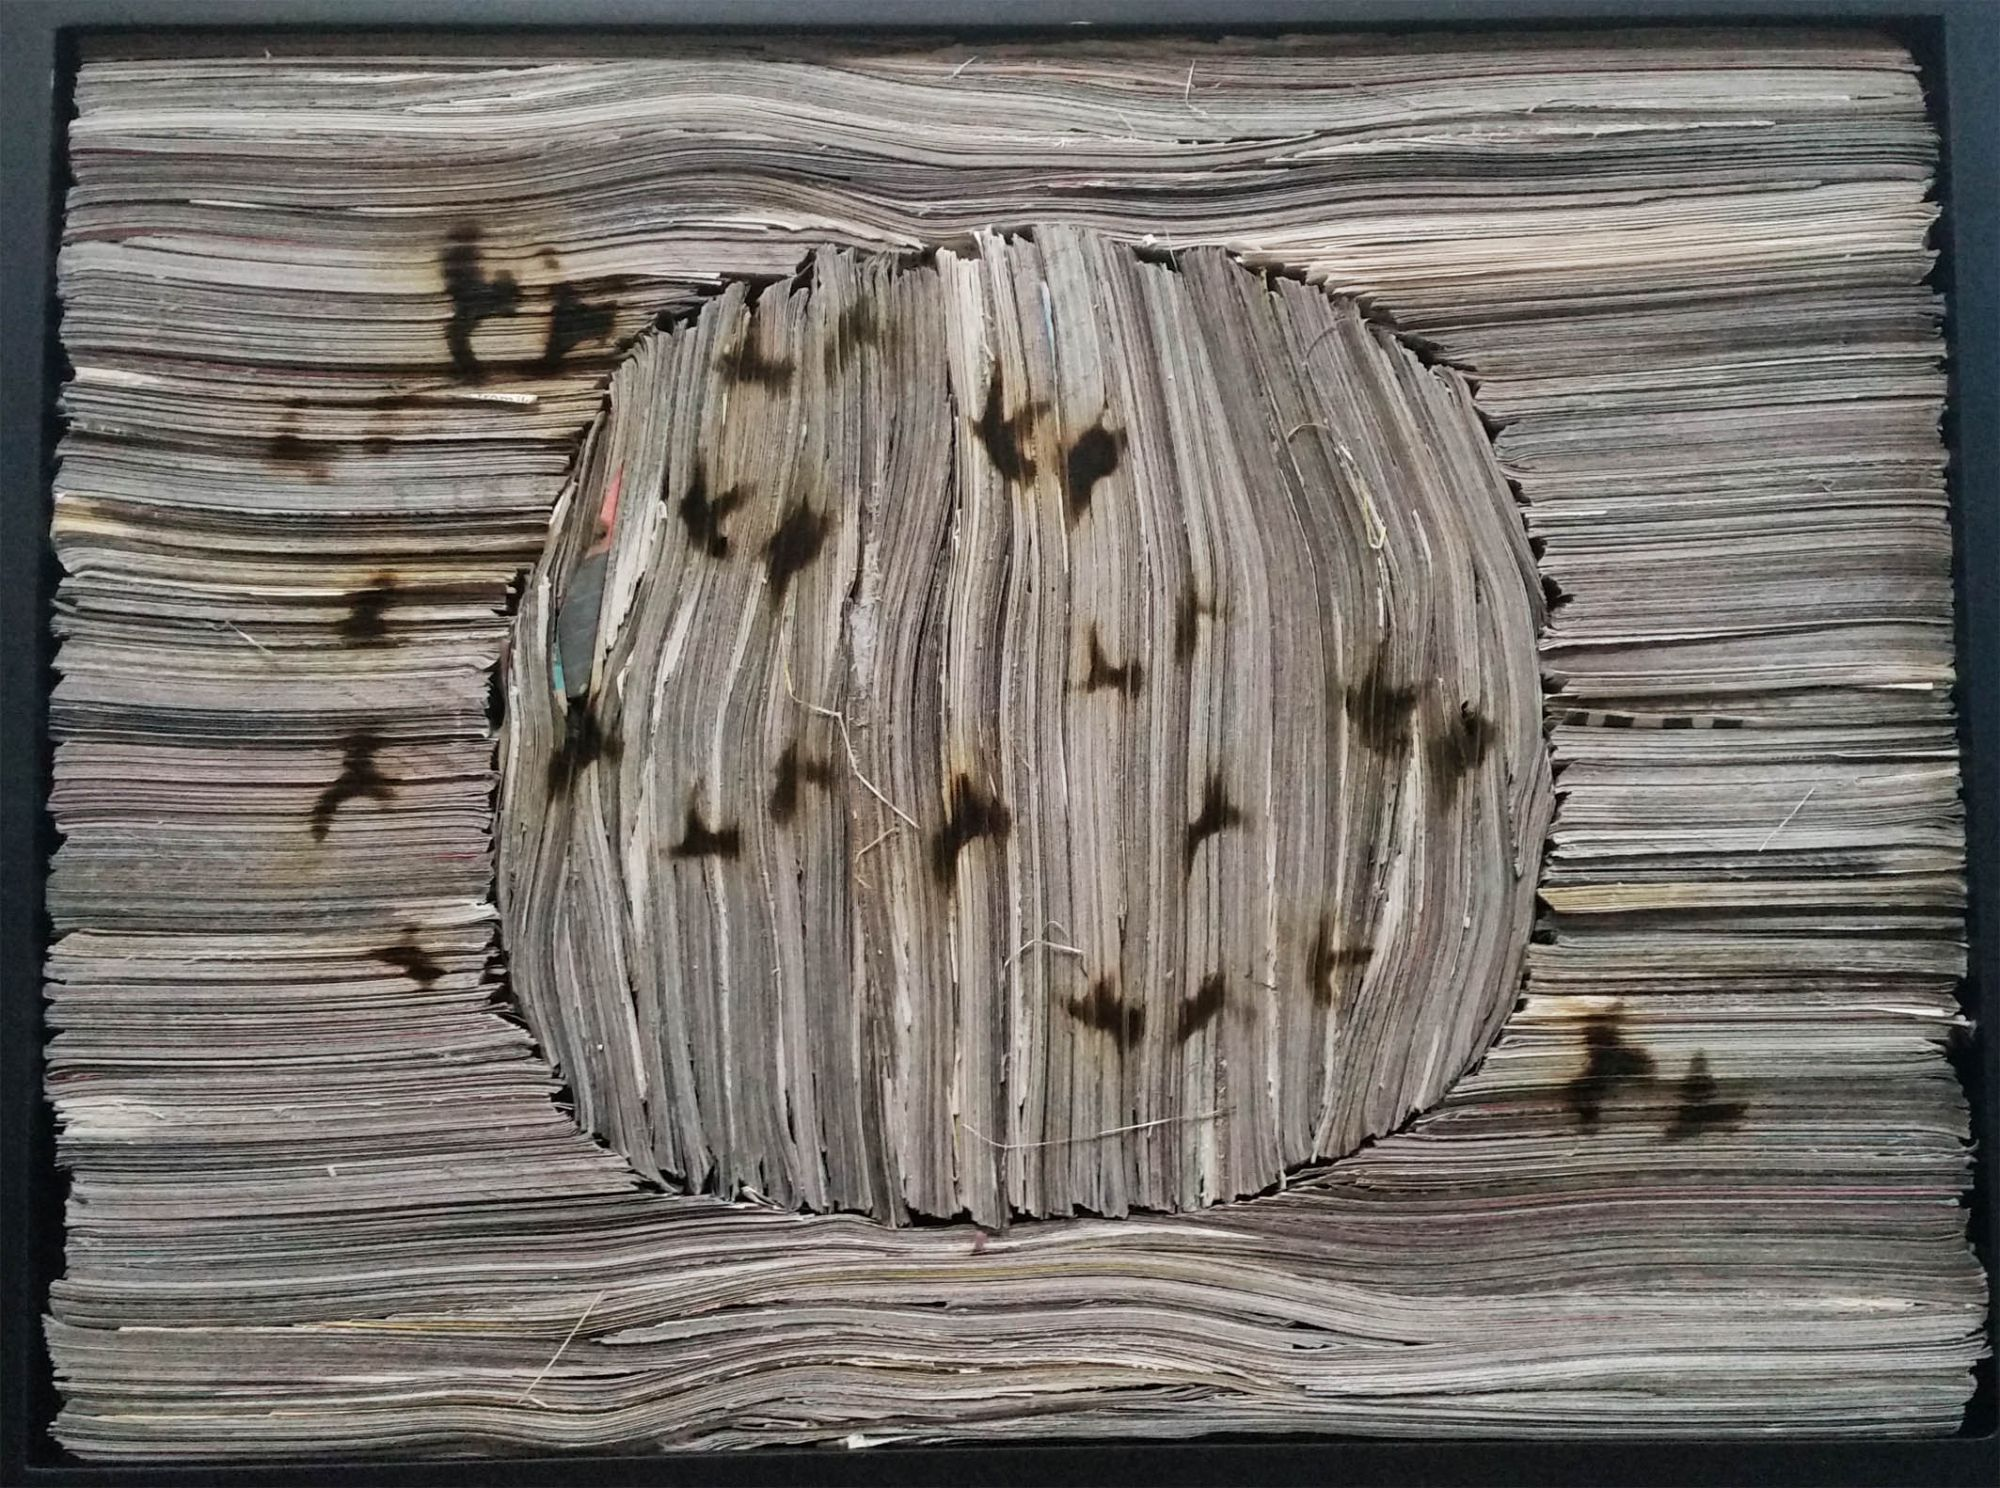 newsapaper artwork by Tracey Falcon, title  MIGRATION. newspaper resembling wood drawn on with a blowtorch